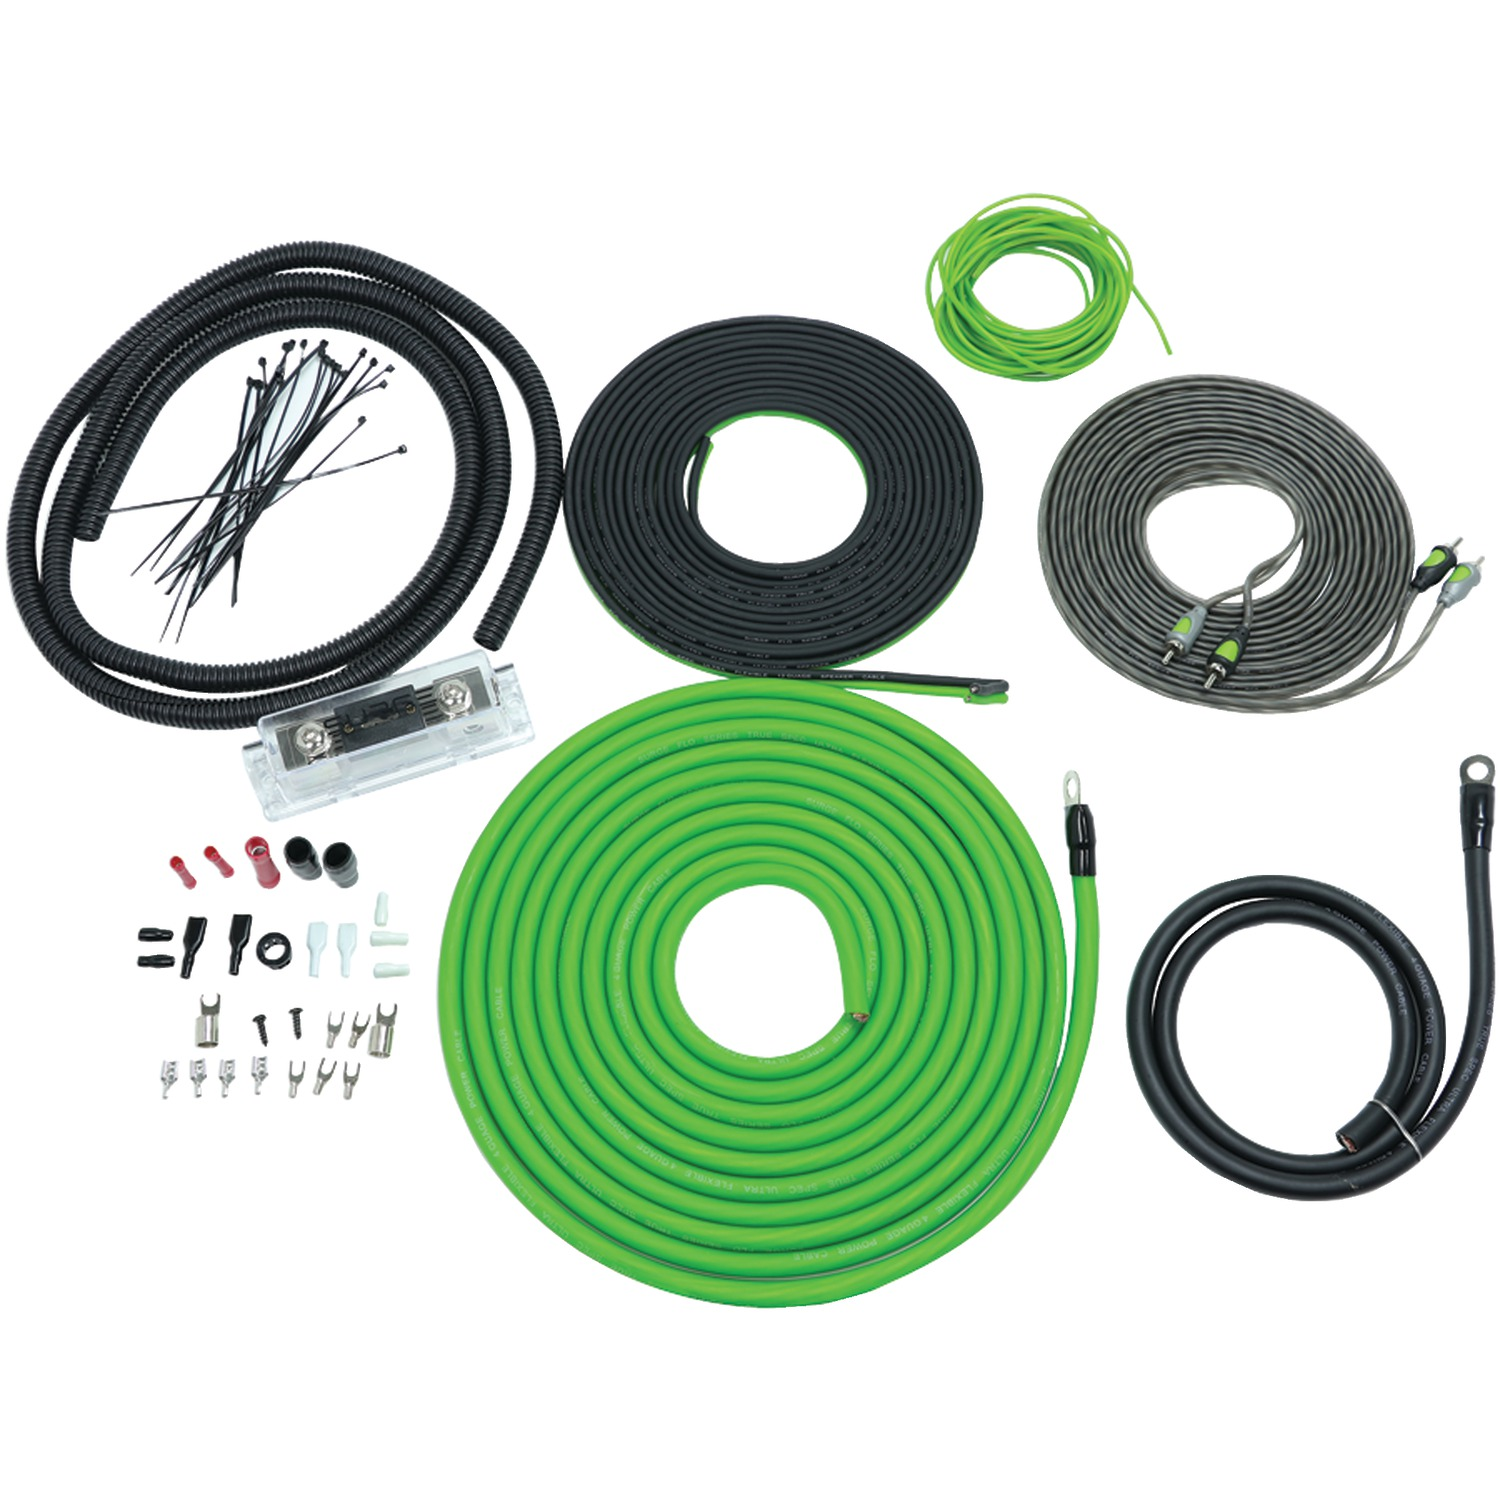 Surge F-4 Flo Series Amp Installation Kit (4 Gauge, 2,000 Watts)